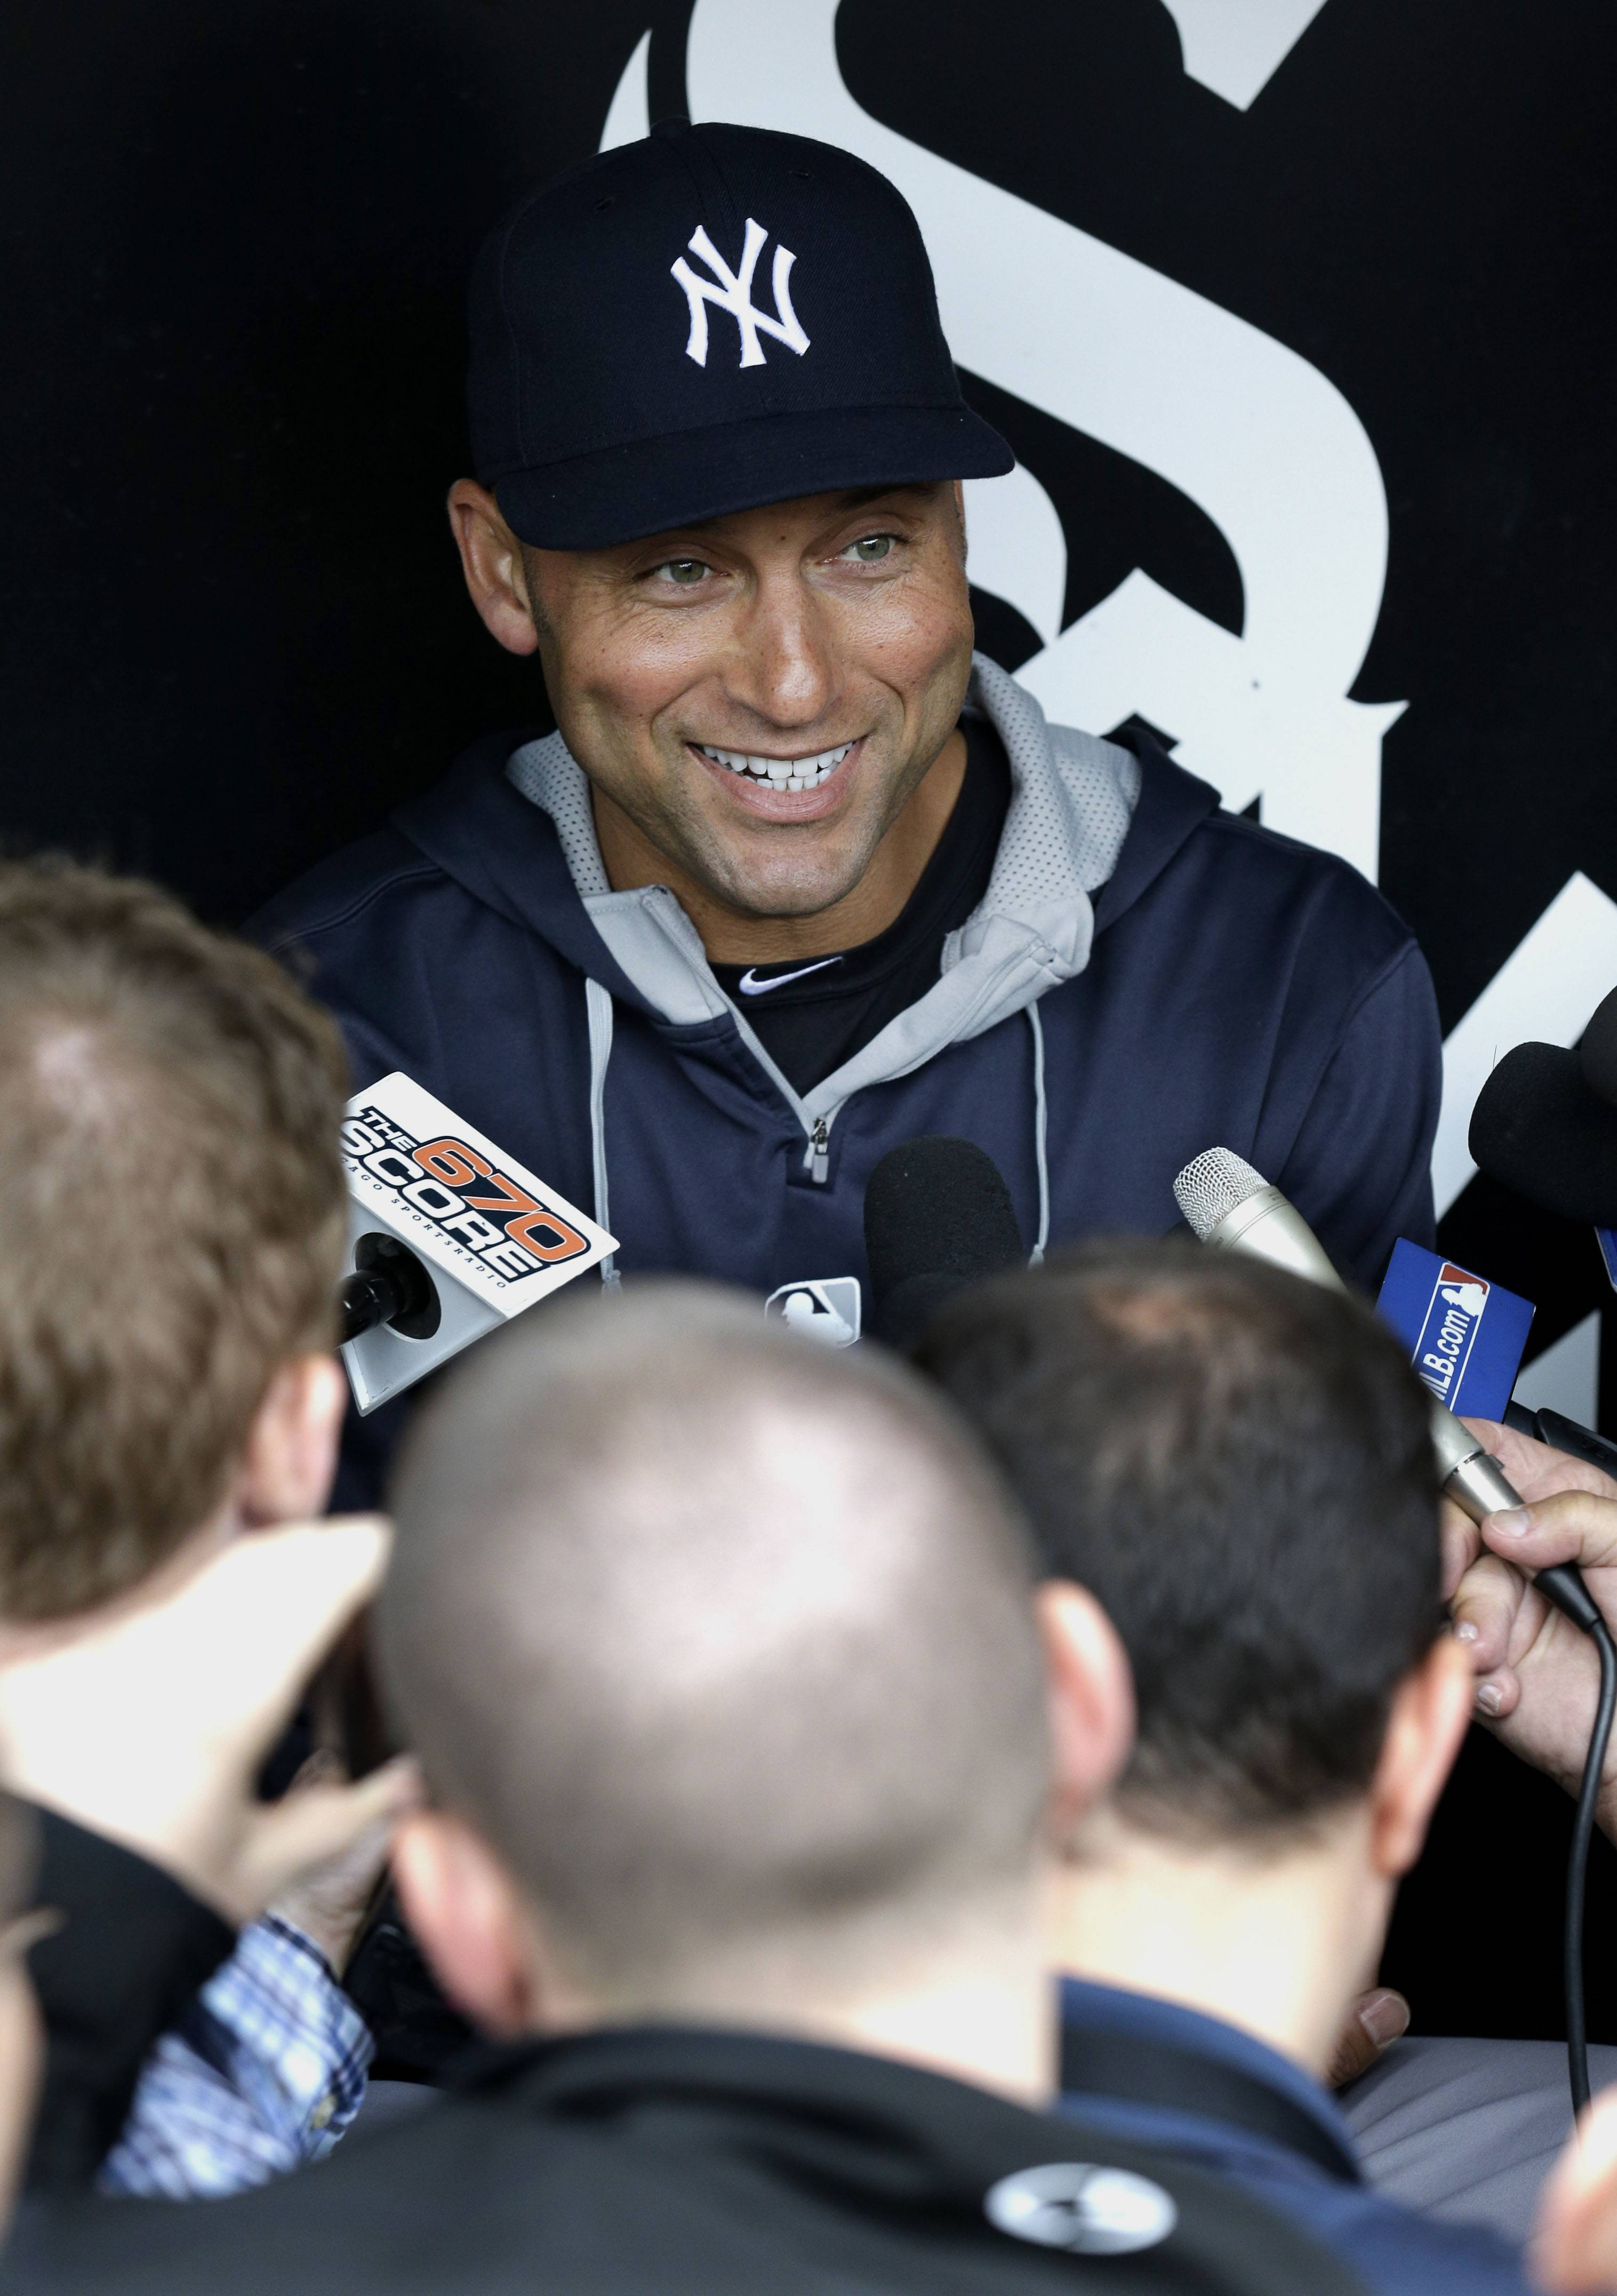 New York Yankees infielder Derek Jeter smiles as he talks to media at a news conference before a baseball game against the Chicago White Sox in Chicago on Thursday, May 22, 2014. (AP Photo/Nam Y. Huh)